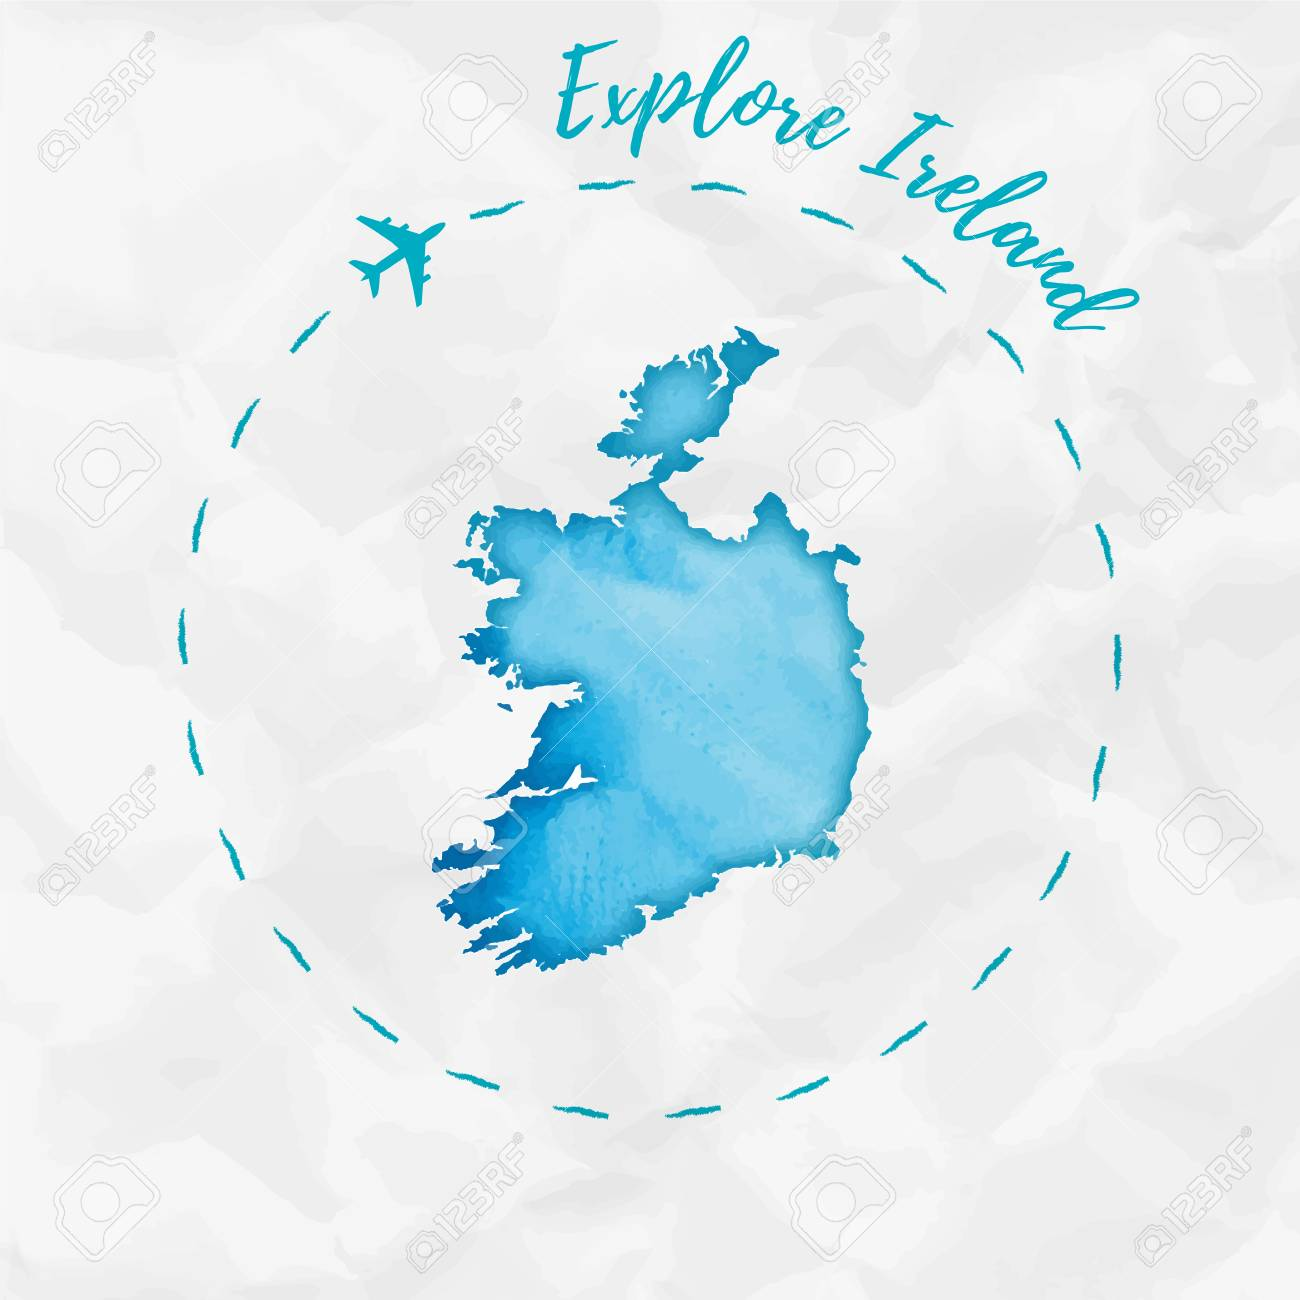 Map Of Ireland Poster.Ireland Watercolor Map In Turquoise Colors Explore Ireland Poster